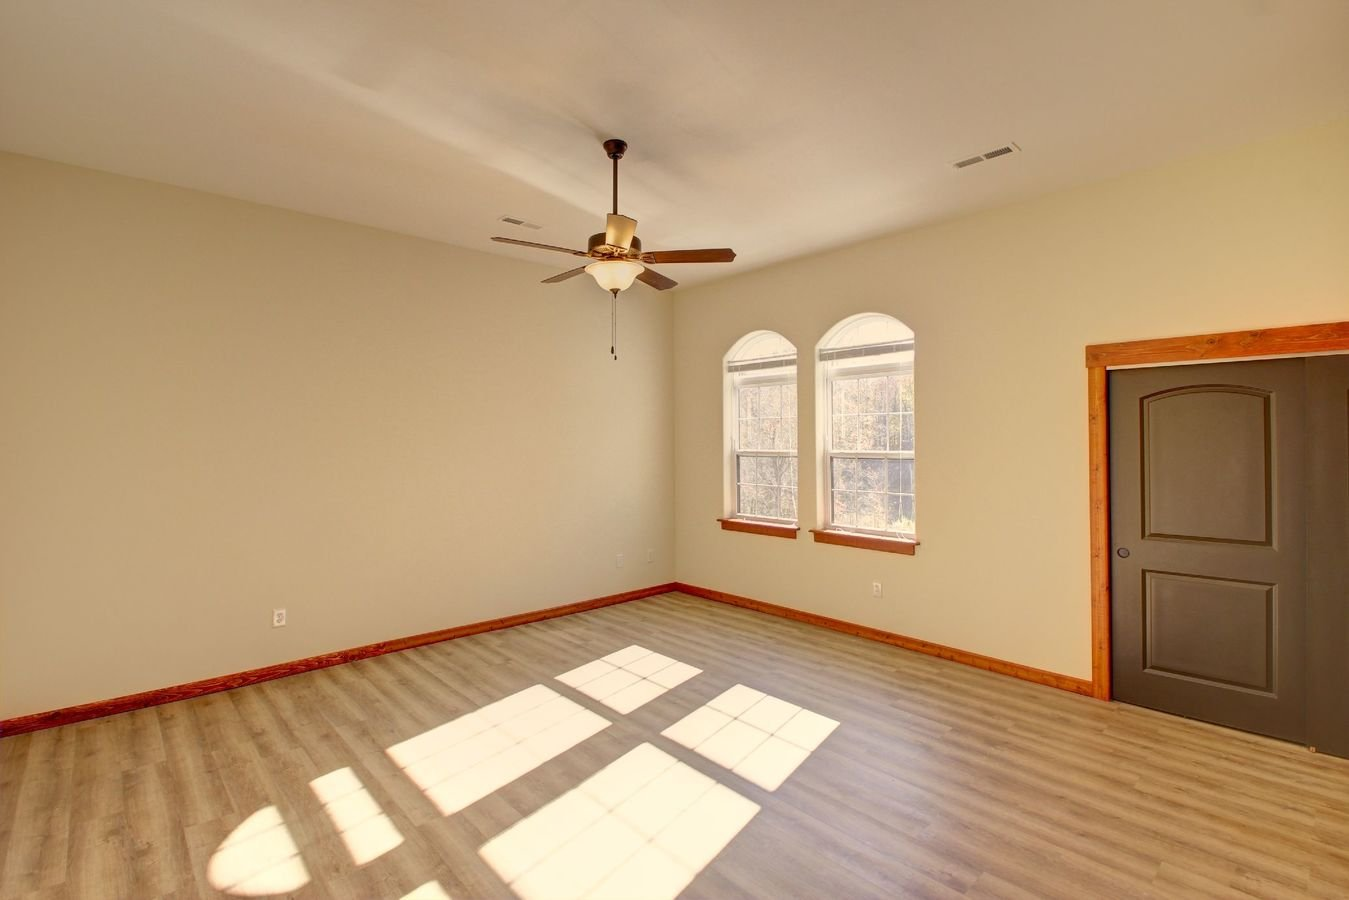 1 Bedroom 1 Bathroom Apartment for rent at Highgrove in Bloomington, IN